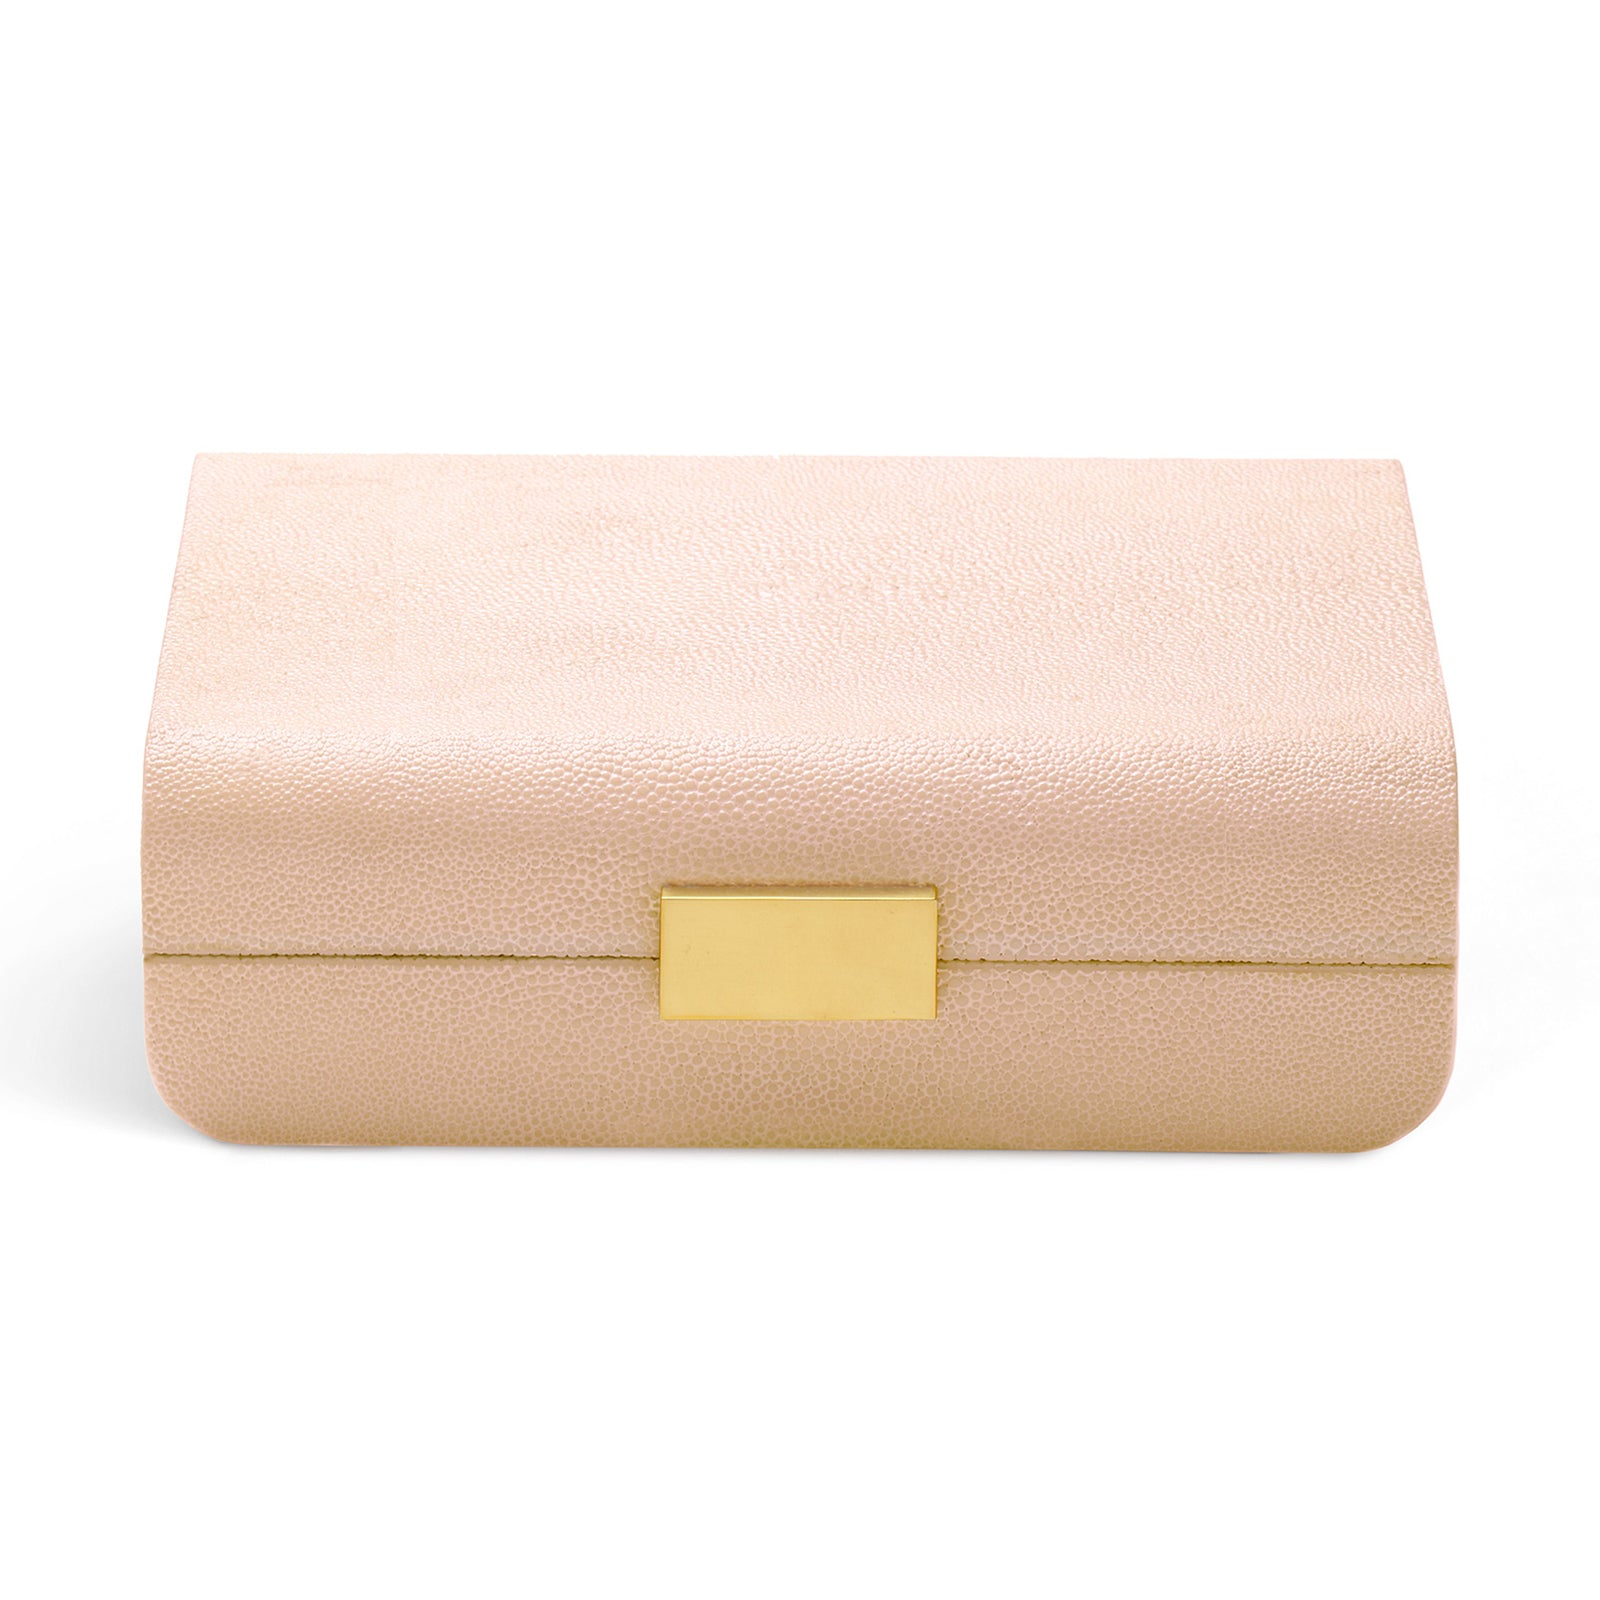 Blush Modern Shagreen Decorative Box by AERIN on LuxDeco.com